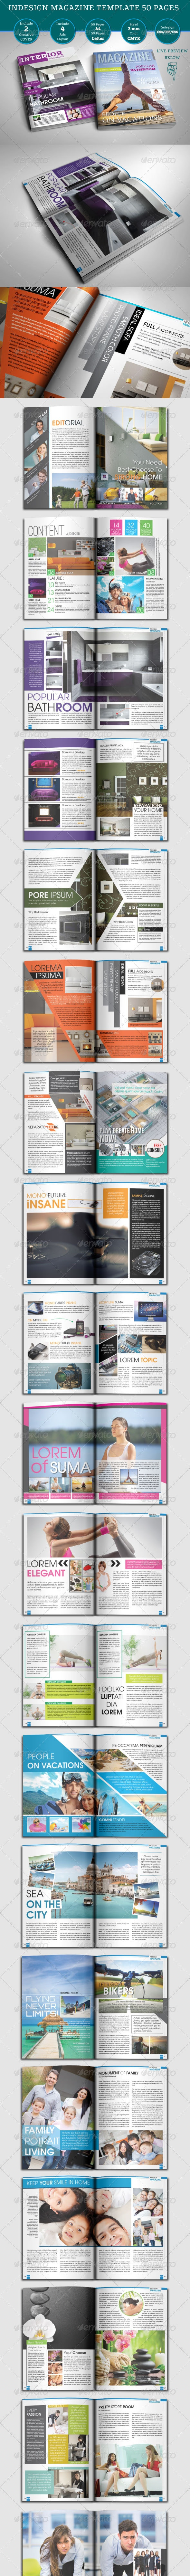 Indesign Magazine Templates 50 Pages  - Magazines Print Templates